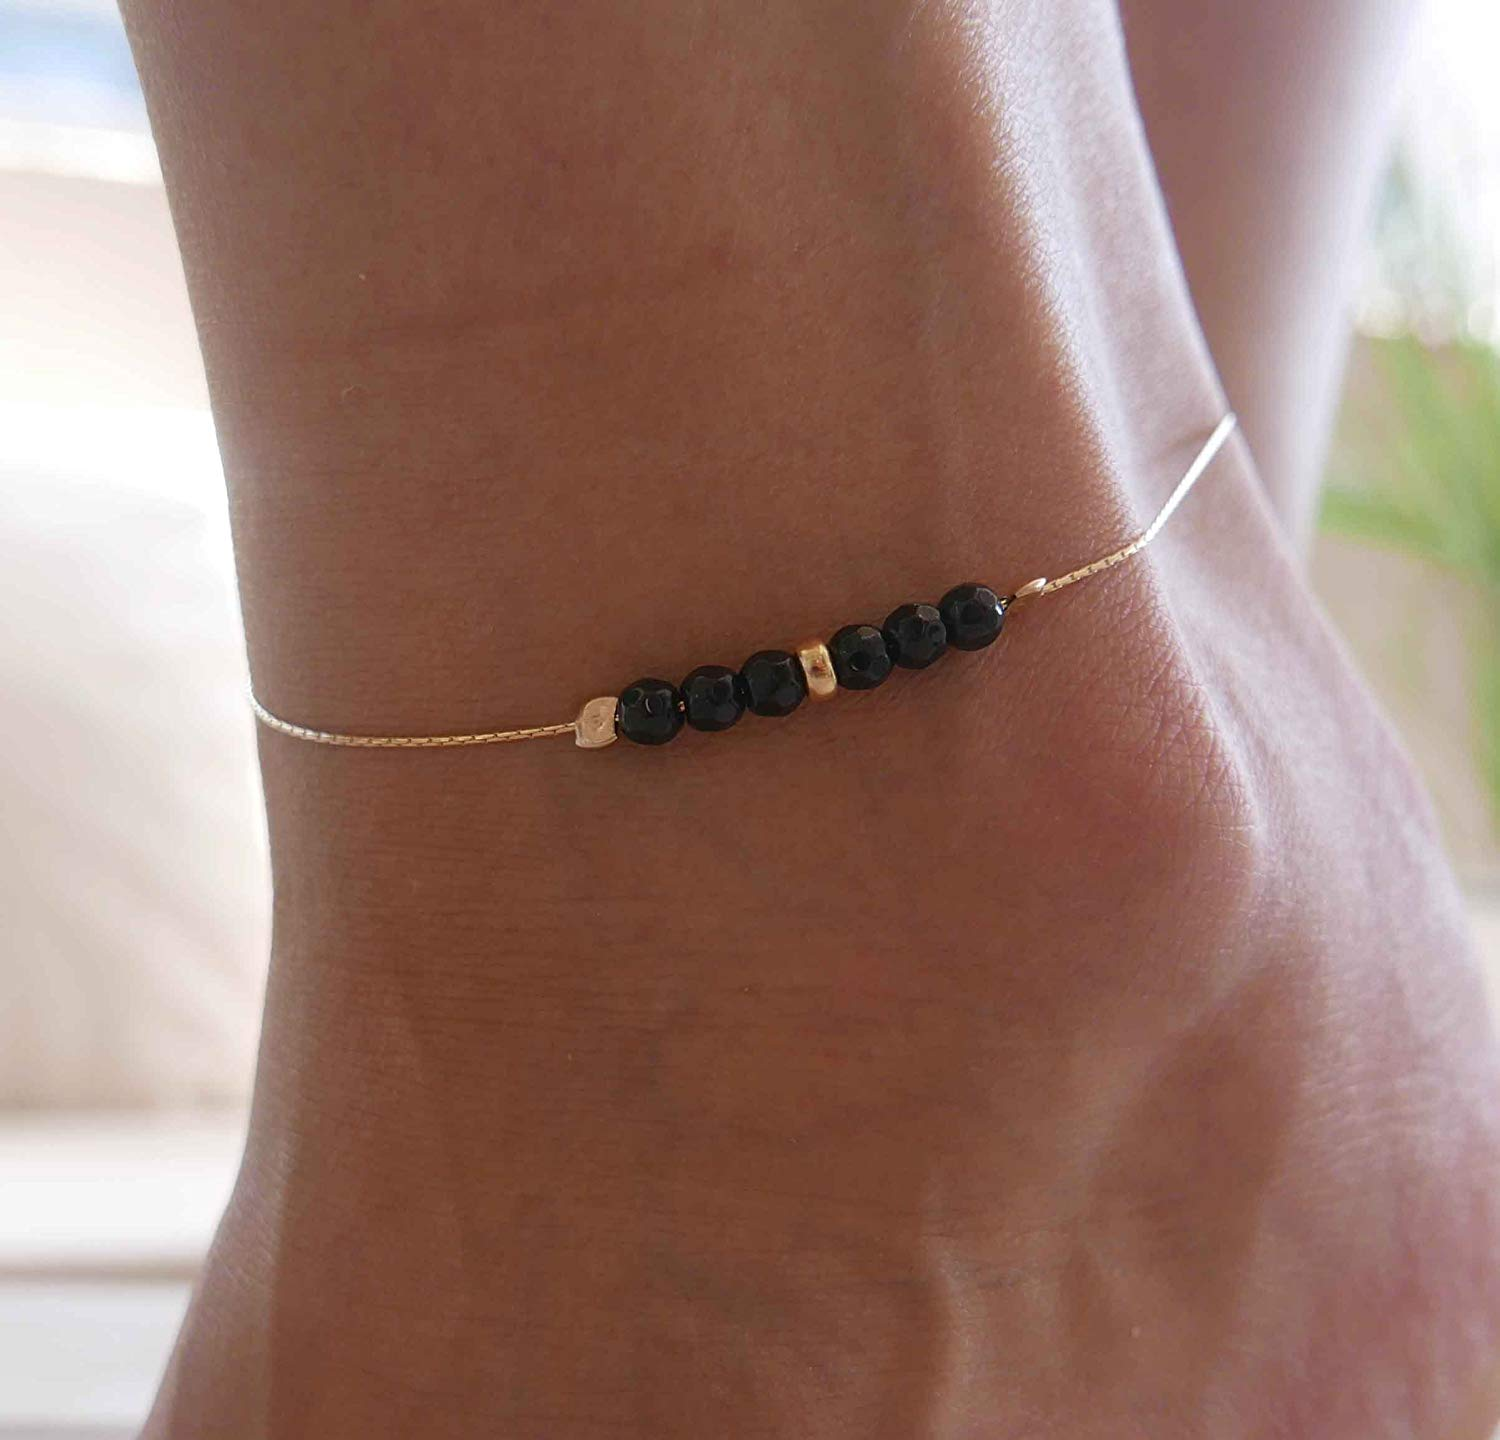 Handmade Gold Anklet For Women Set With Black Onyx Beads By Galis Jewelry - Gold Ankle Bracelet For Women - Chain Anklet - Onyx Anklet - Beaded Anklet - Gemstone Anklet